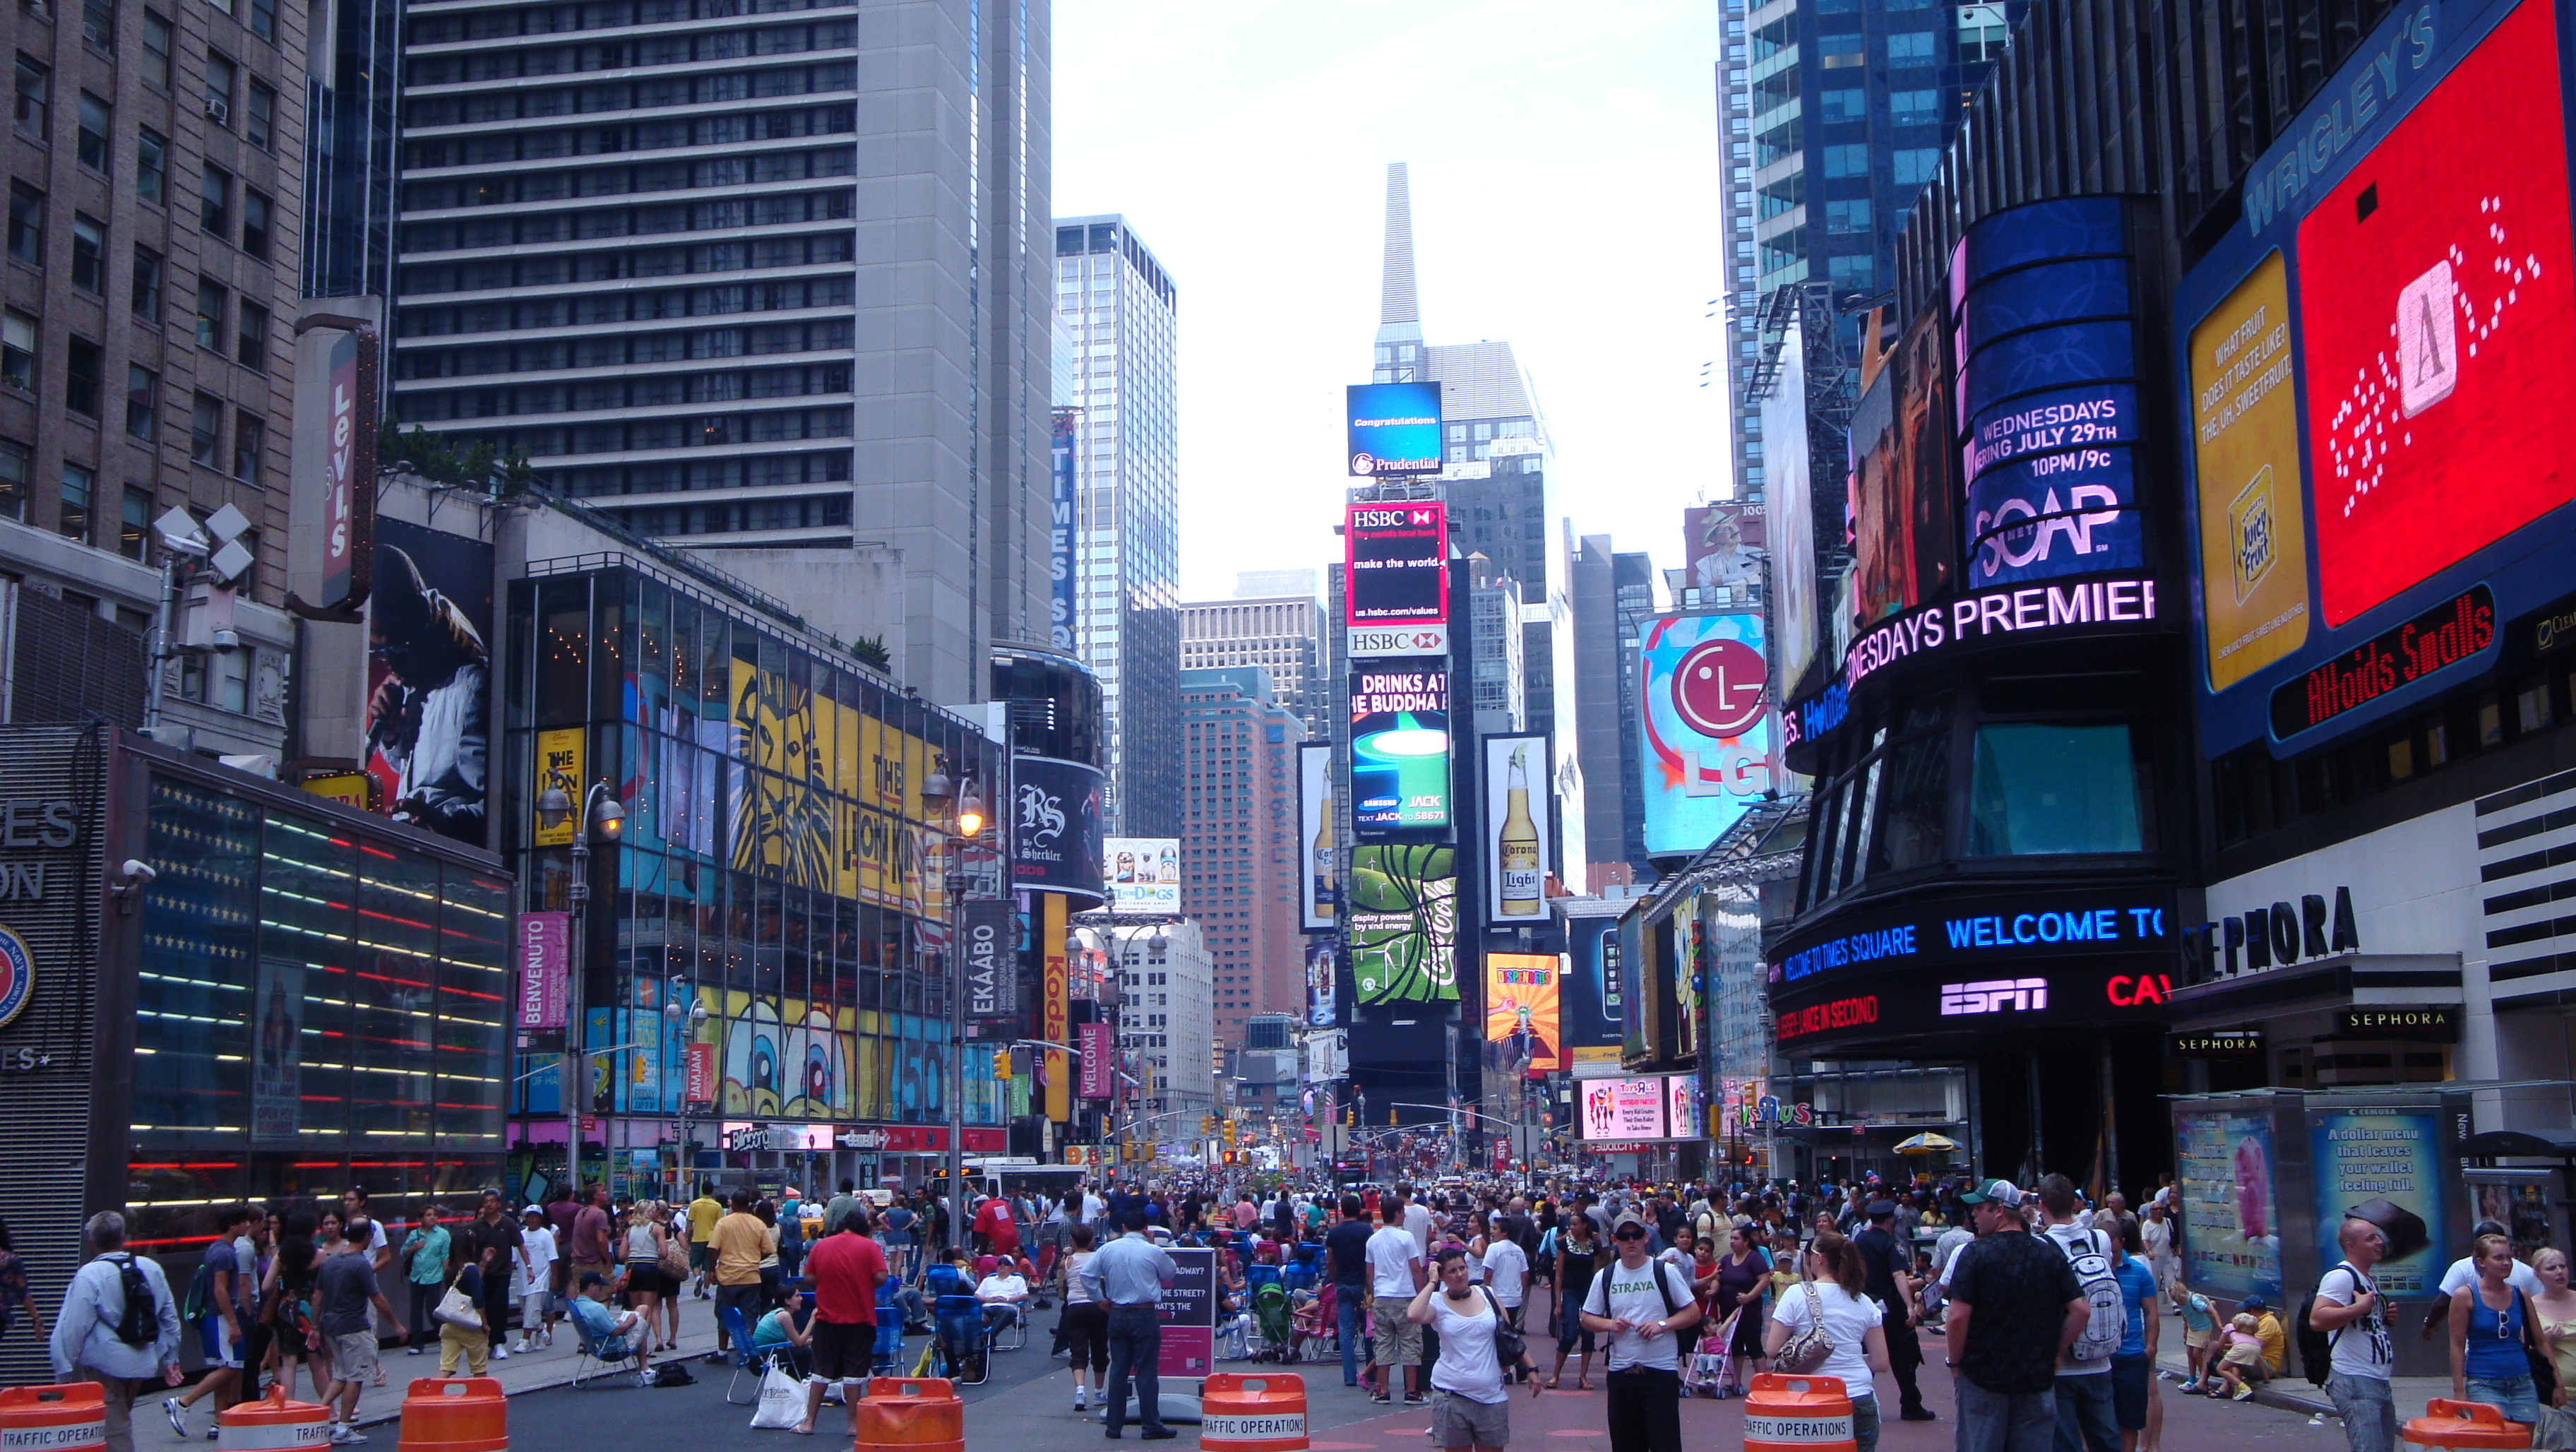 Broadway At Times Square Nyc Crossroads Of The World